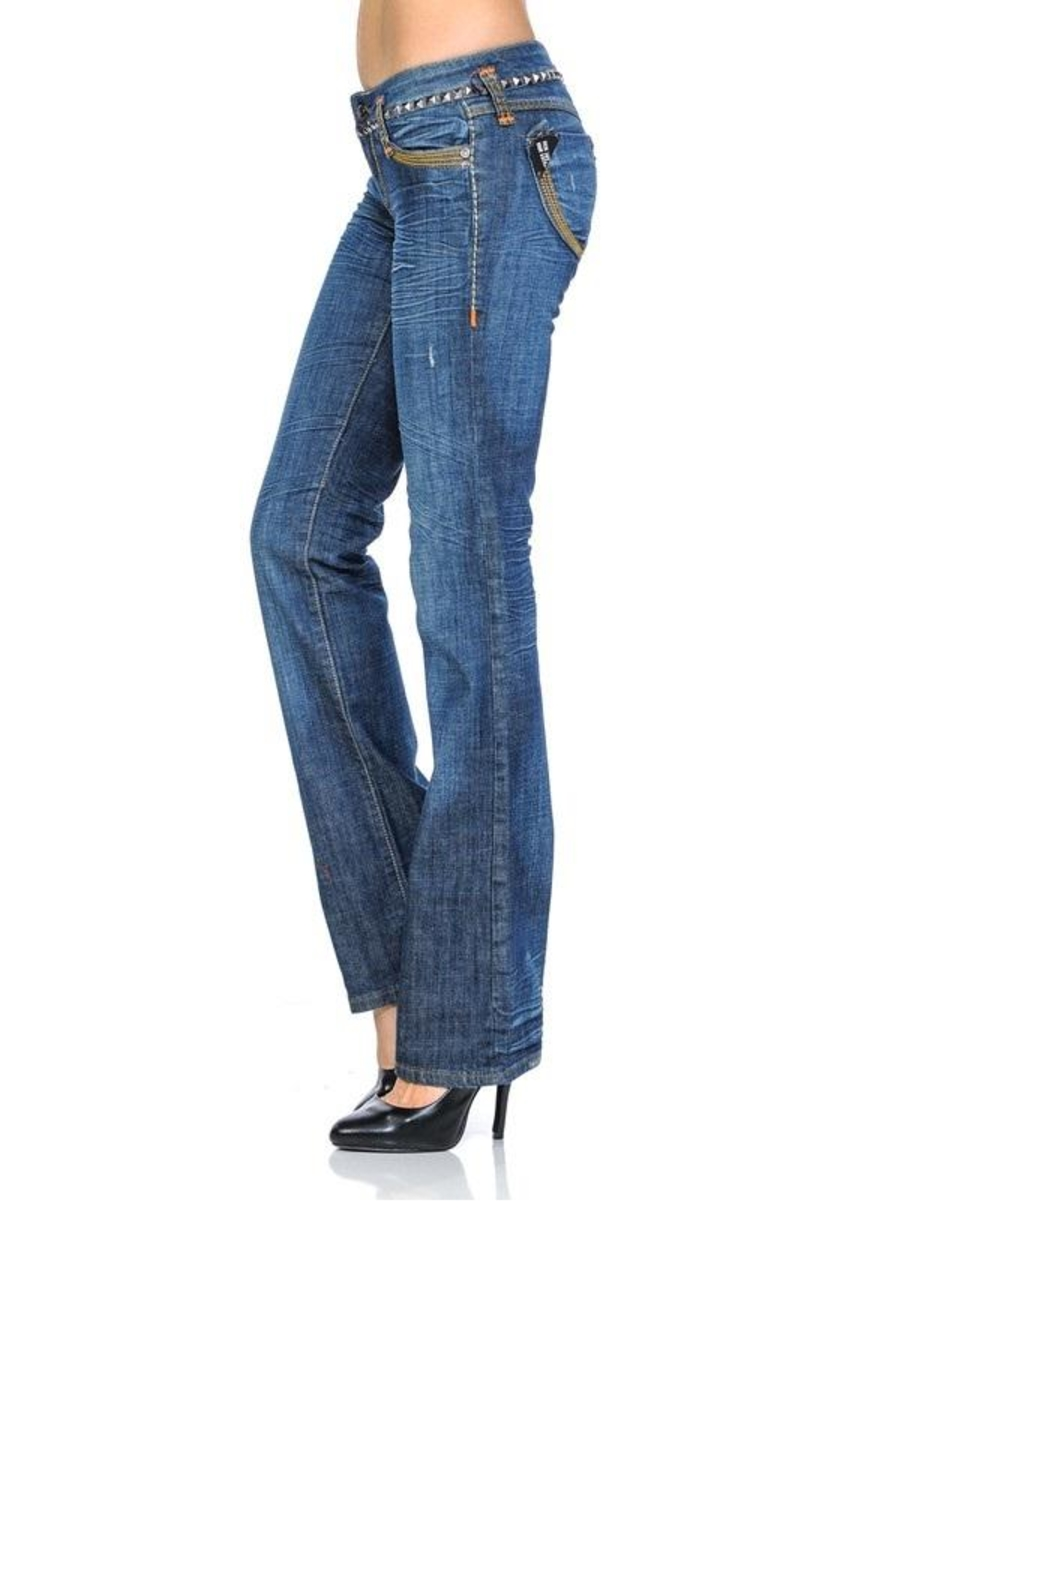 virgin only Crinkly Wash Jeans - Side Cropped Image